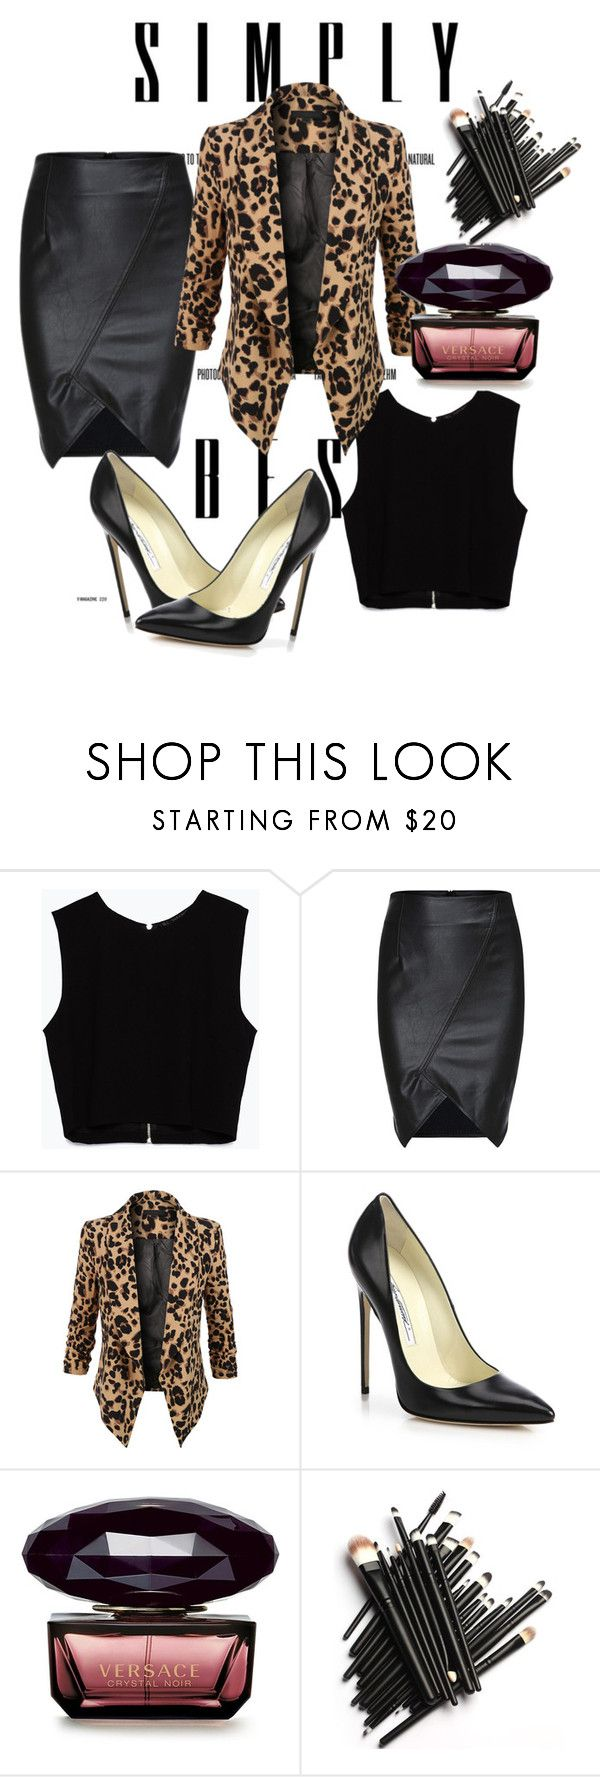 """""""Untitled #2"""" by zerina1993 ❤ liked on Polyvore featuring moda, Zara, LE3NO e Brian Atwood"""